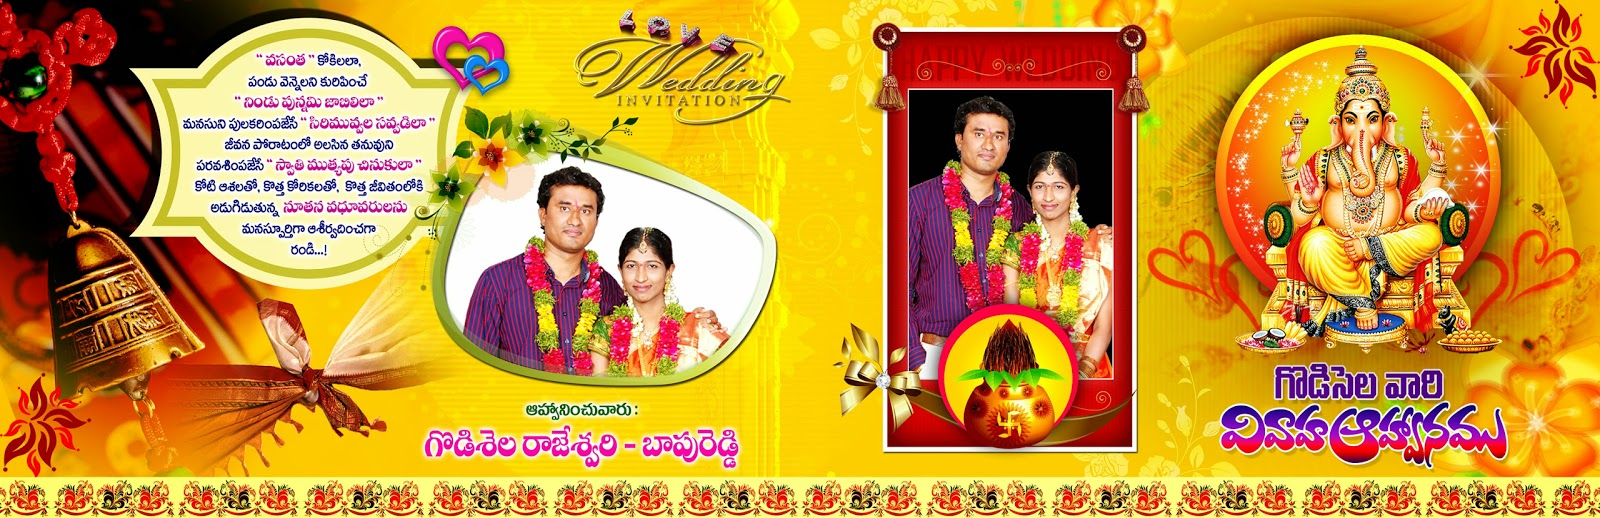 Digital banner design for psd files - Wedding Card Designs Free Download Psd